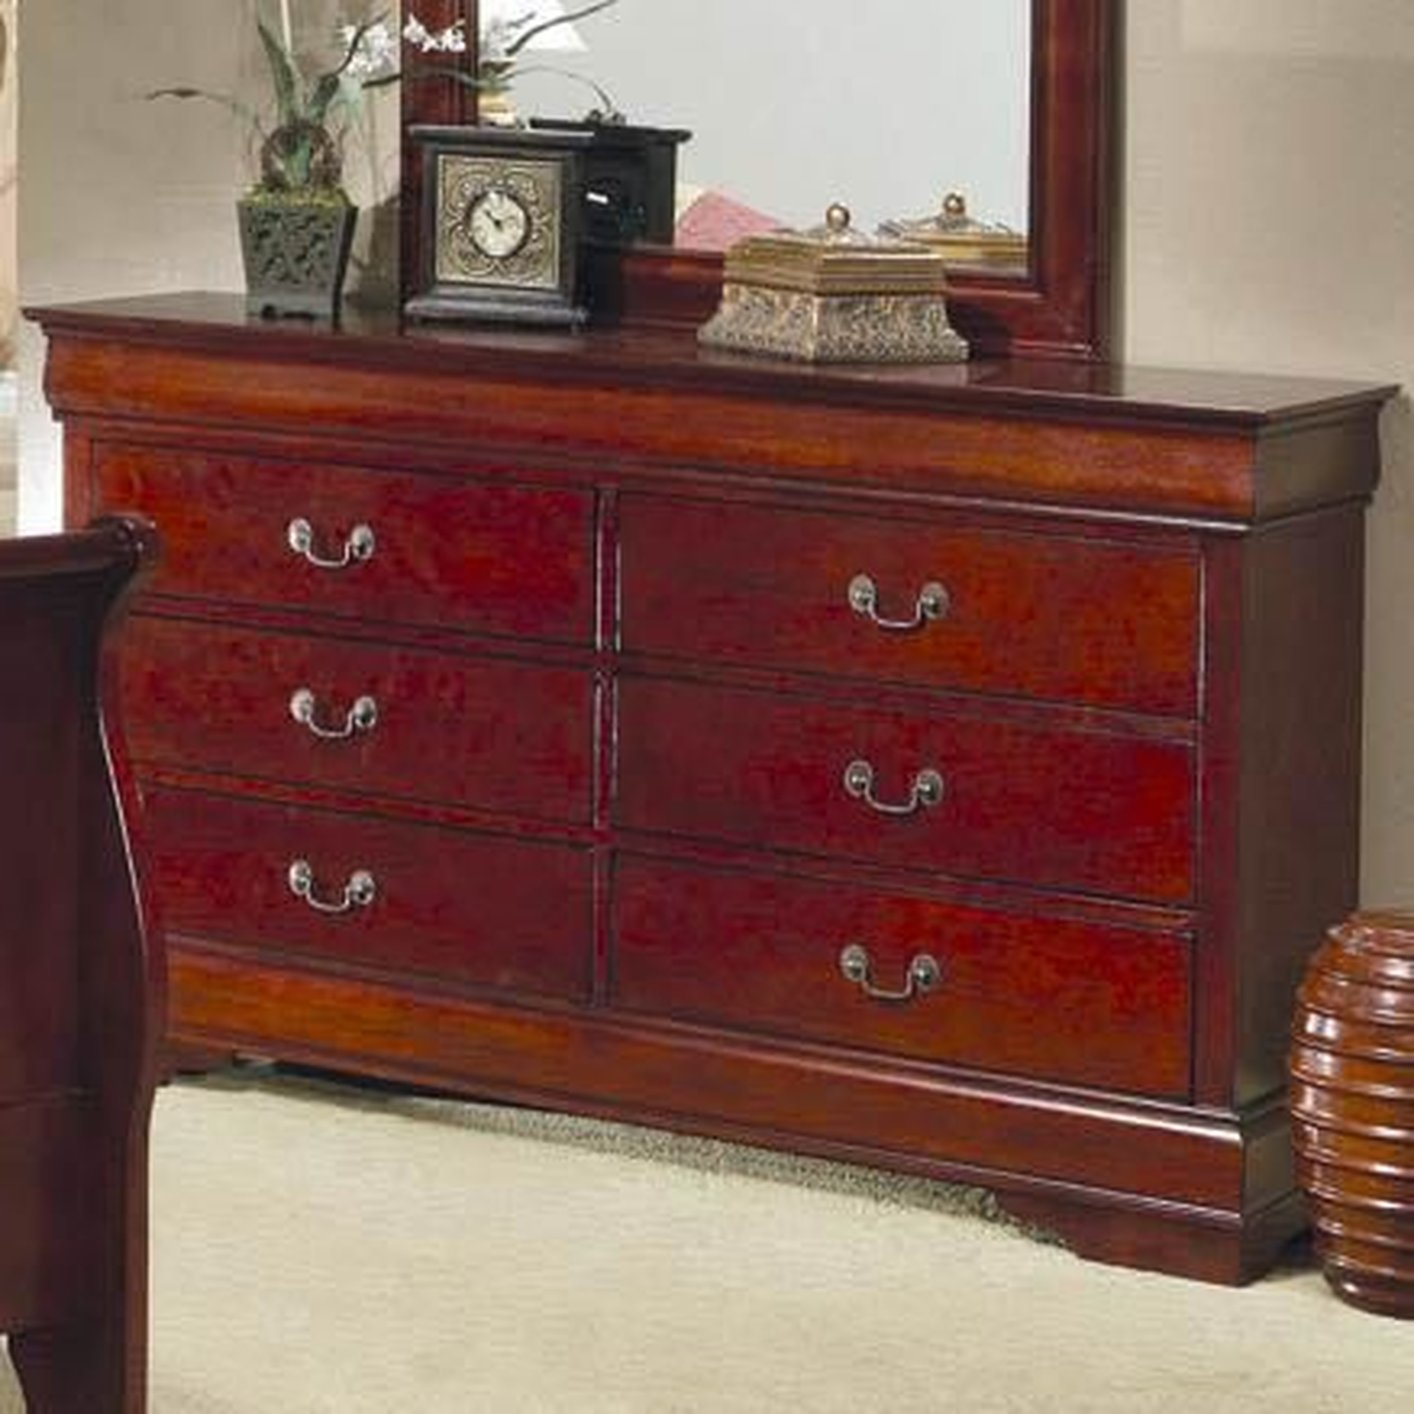 Louis Philippe Cherry Wood Dresser  StealASofa Furniture Outlet Los Angeles CA